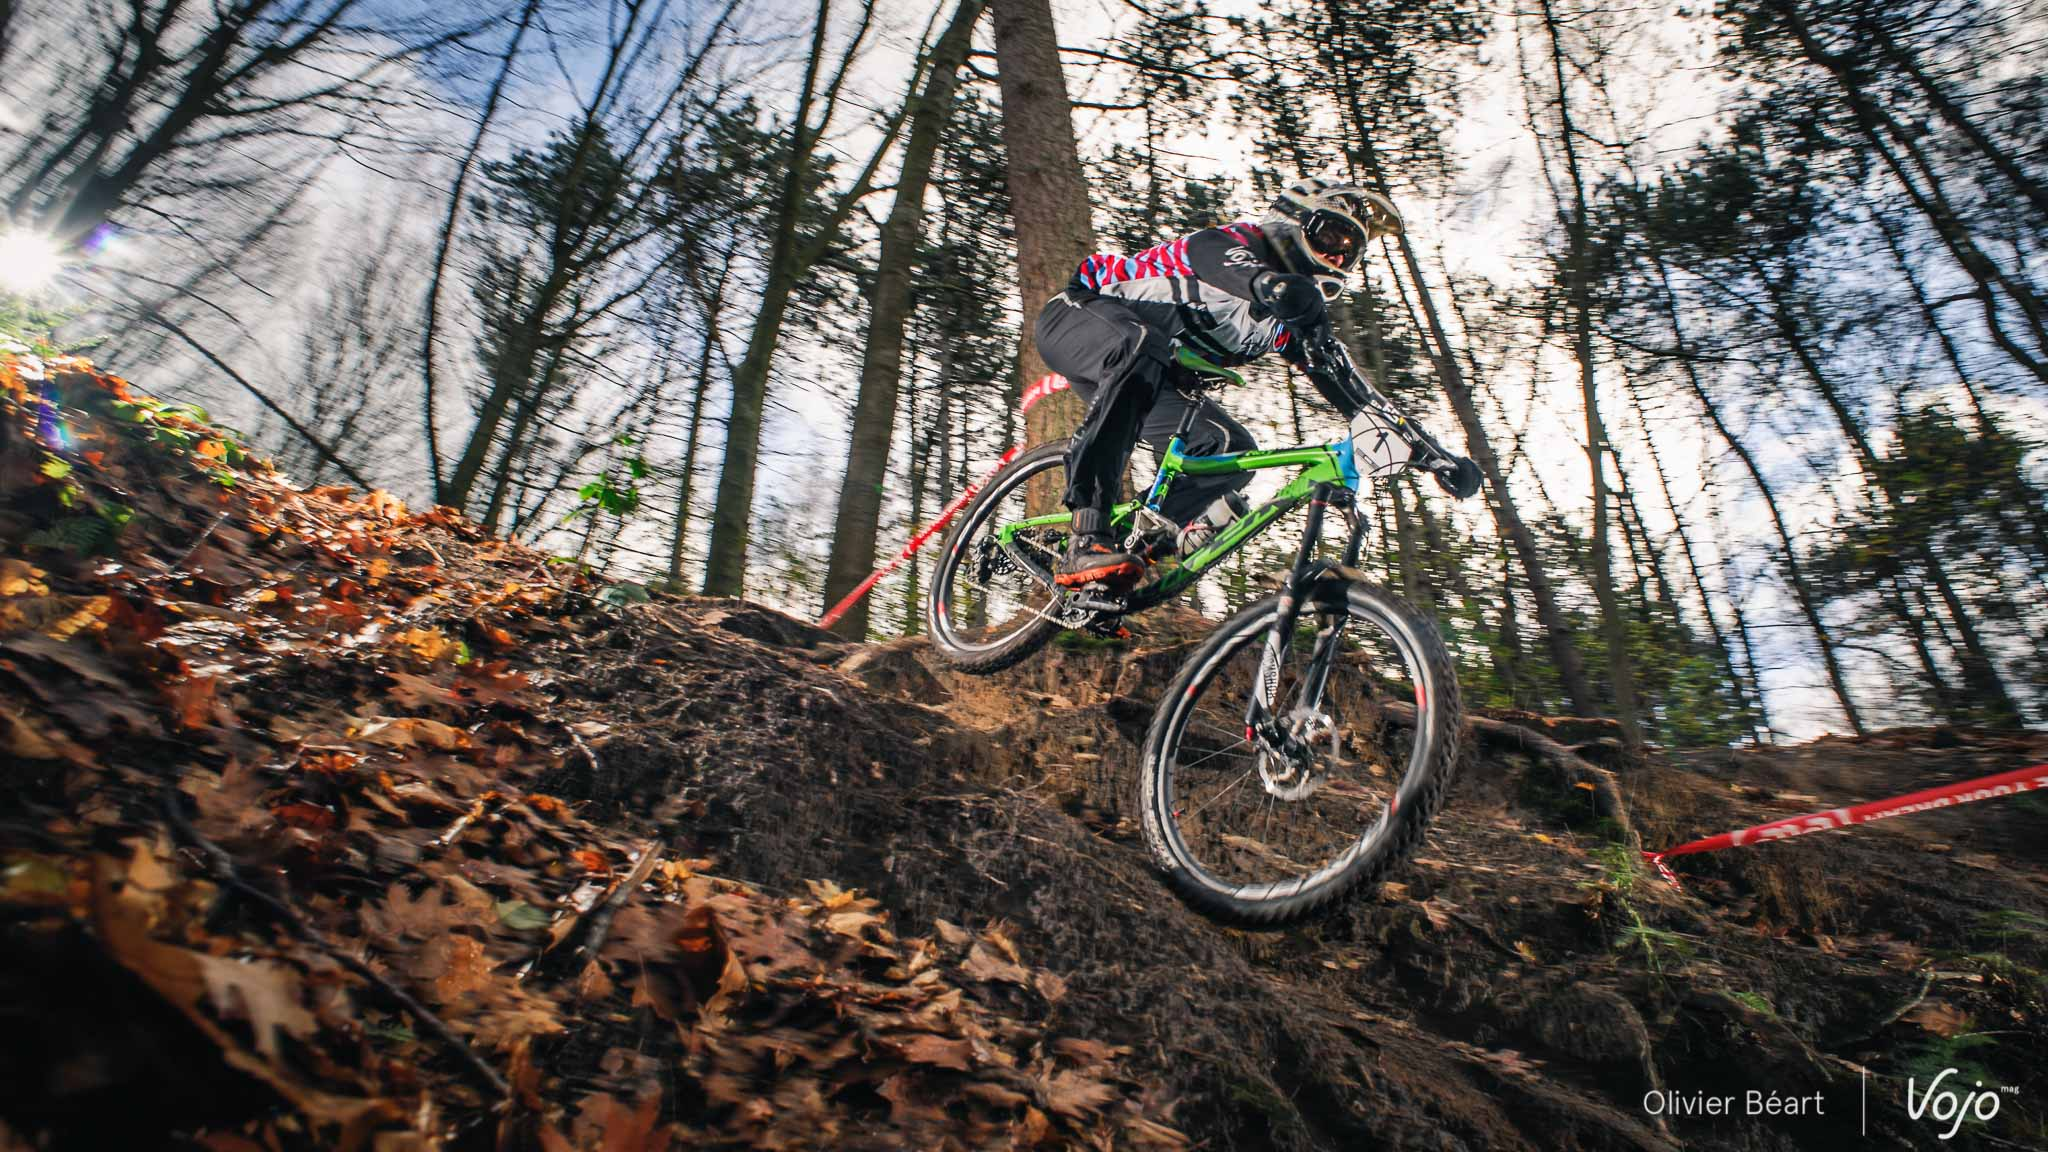 Test_Michelin_Wild_Racer_Enduro_Rear_Action_Copyright_OBeart_VojoMag-3